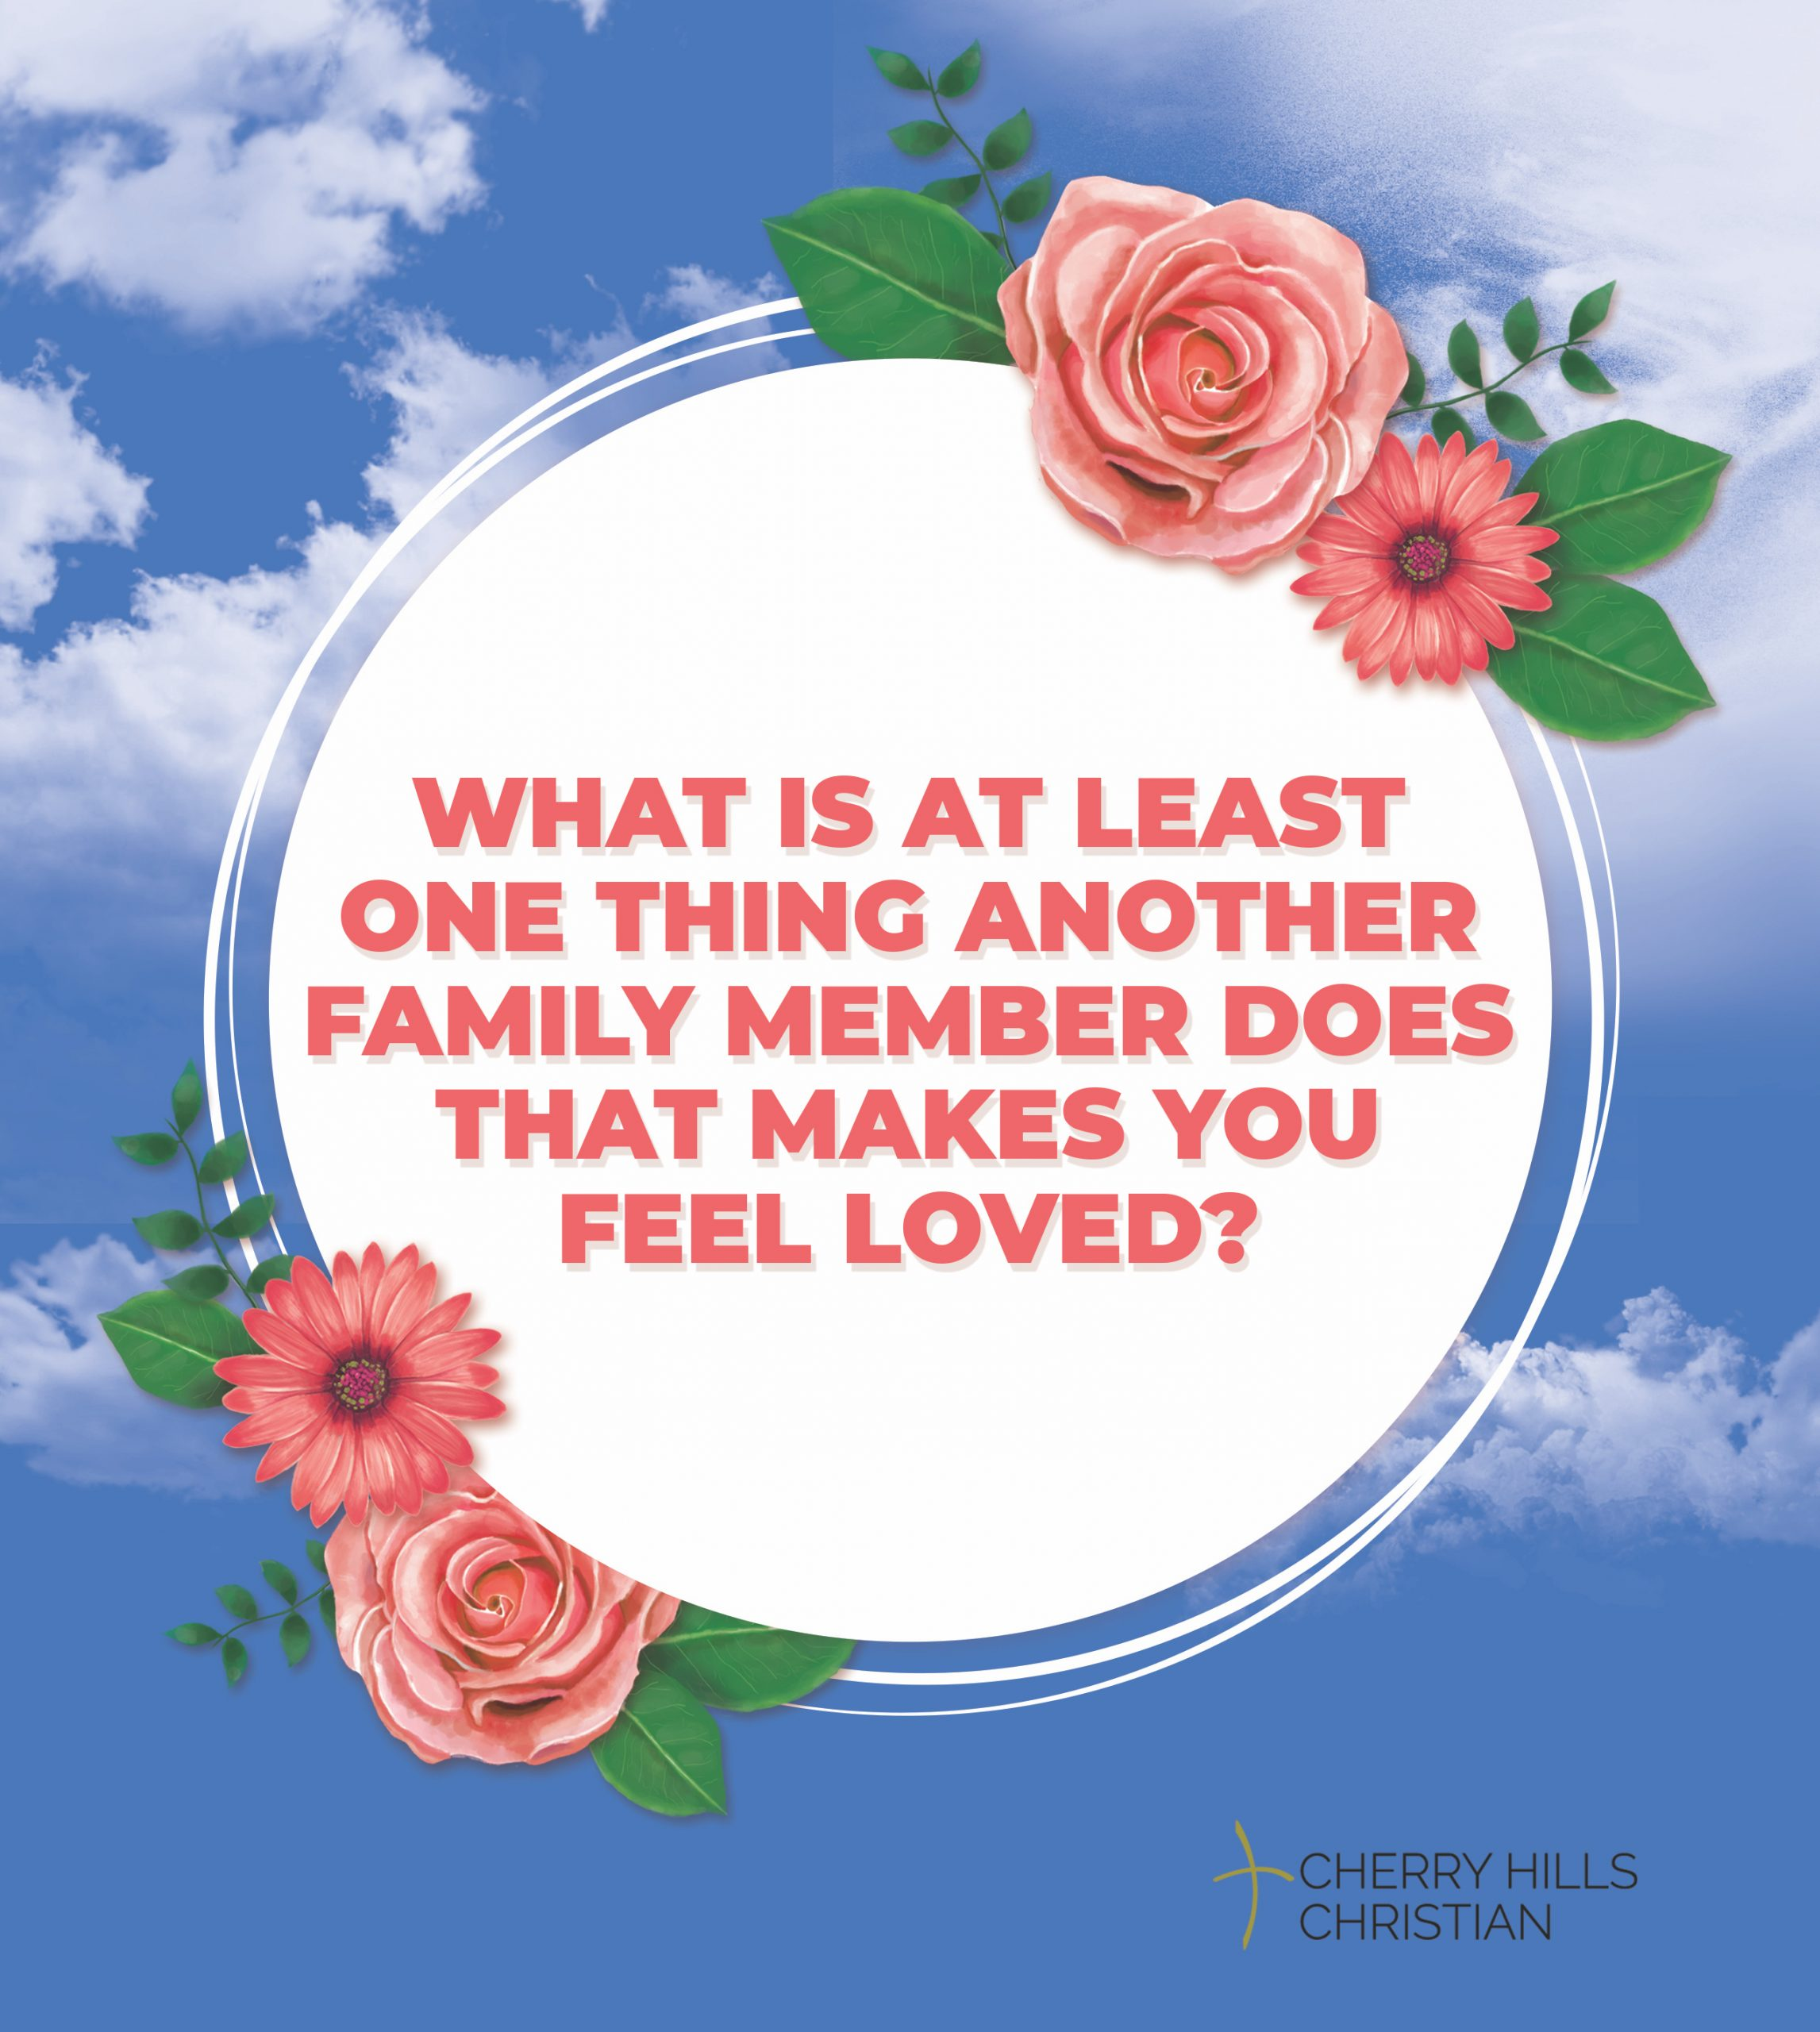 What makes you feel loved?